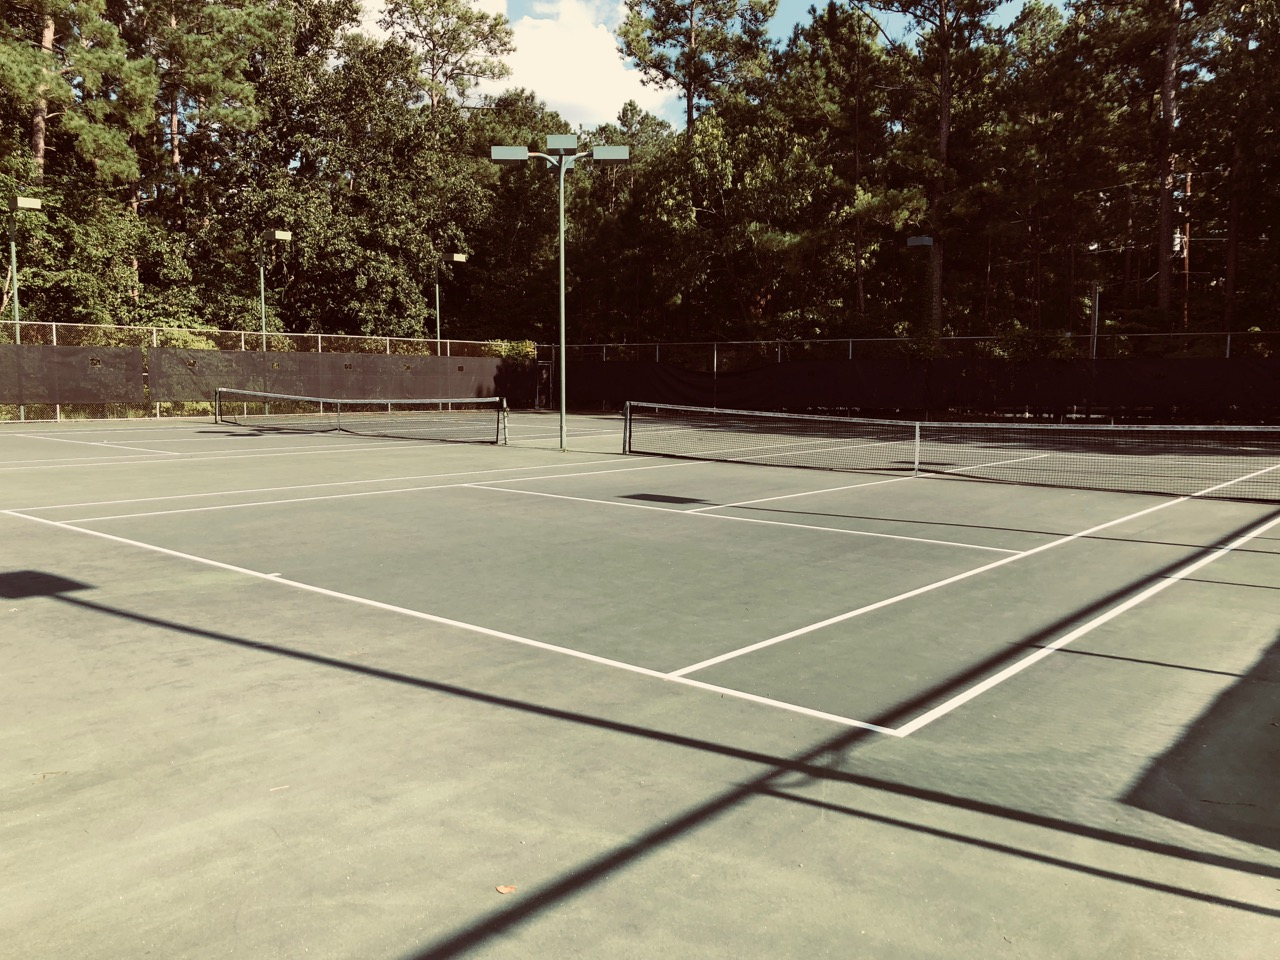 Members have access to tennis 24/7!